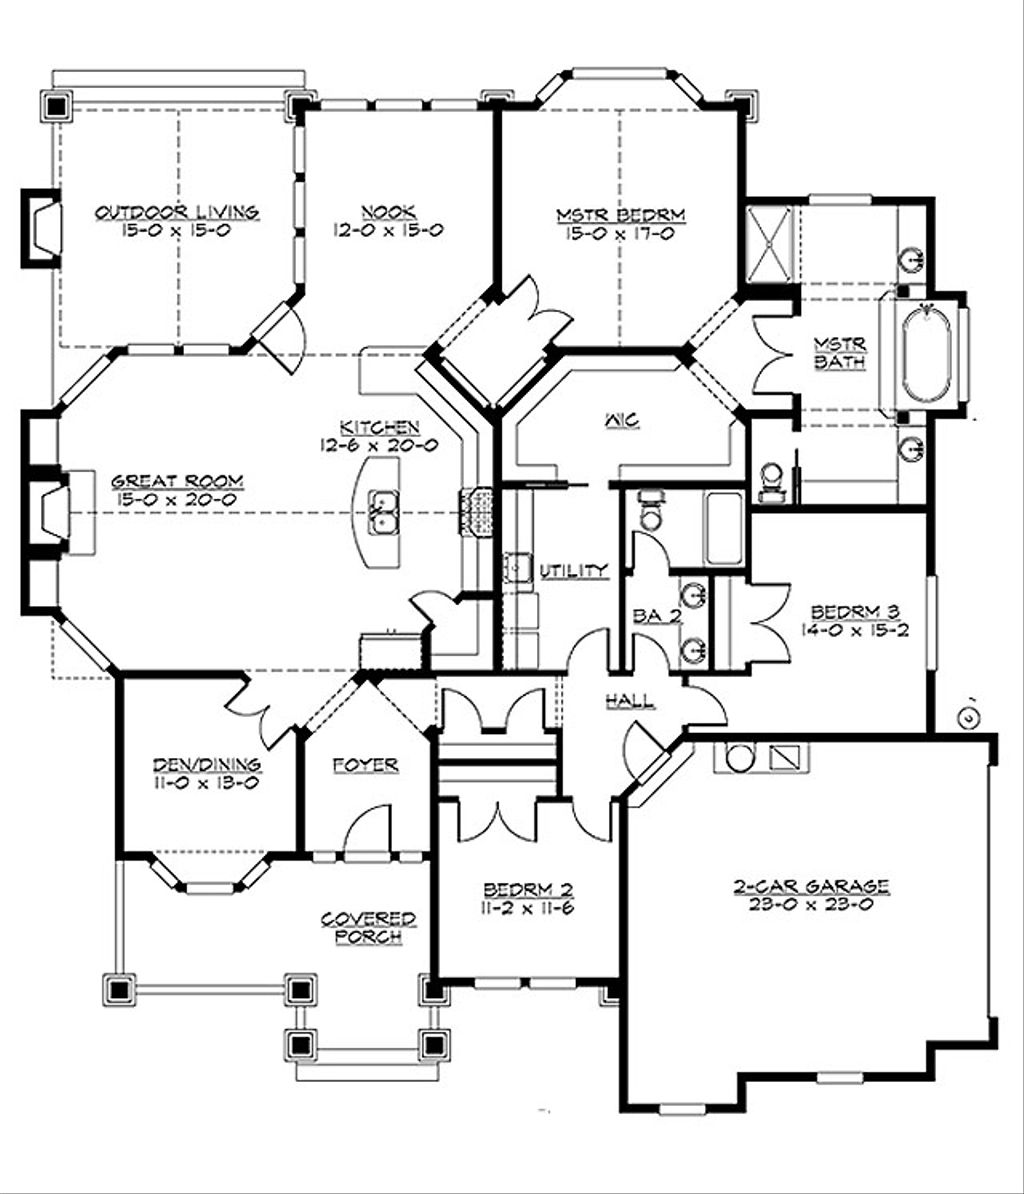 Craftsman style house plan 3 beds 2 baths 2320 sq ft plan 132